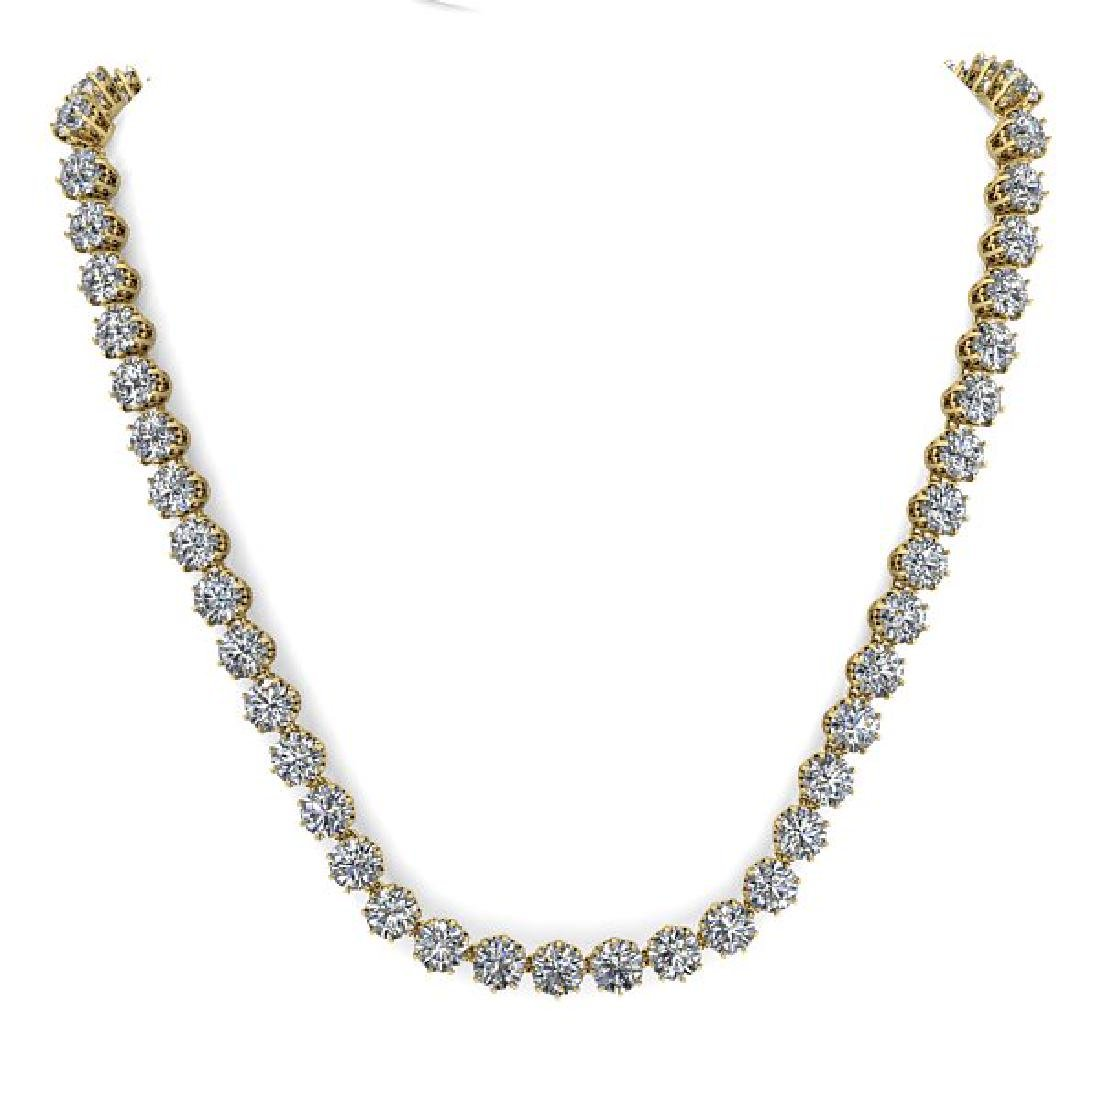 34 CTW SI Certified Diamond Necklace 14K Yellow Gold - 3